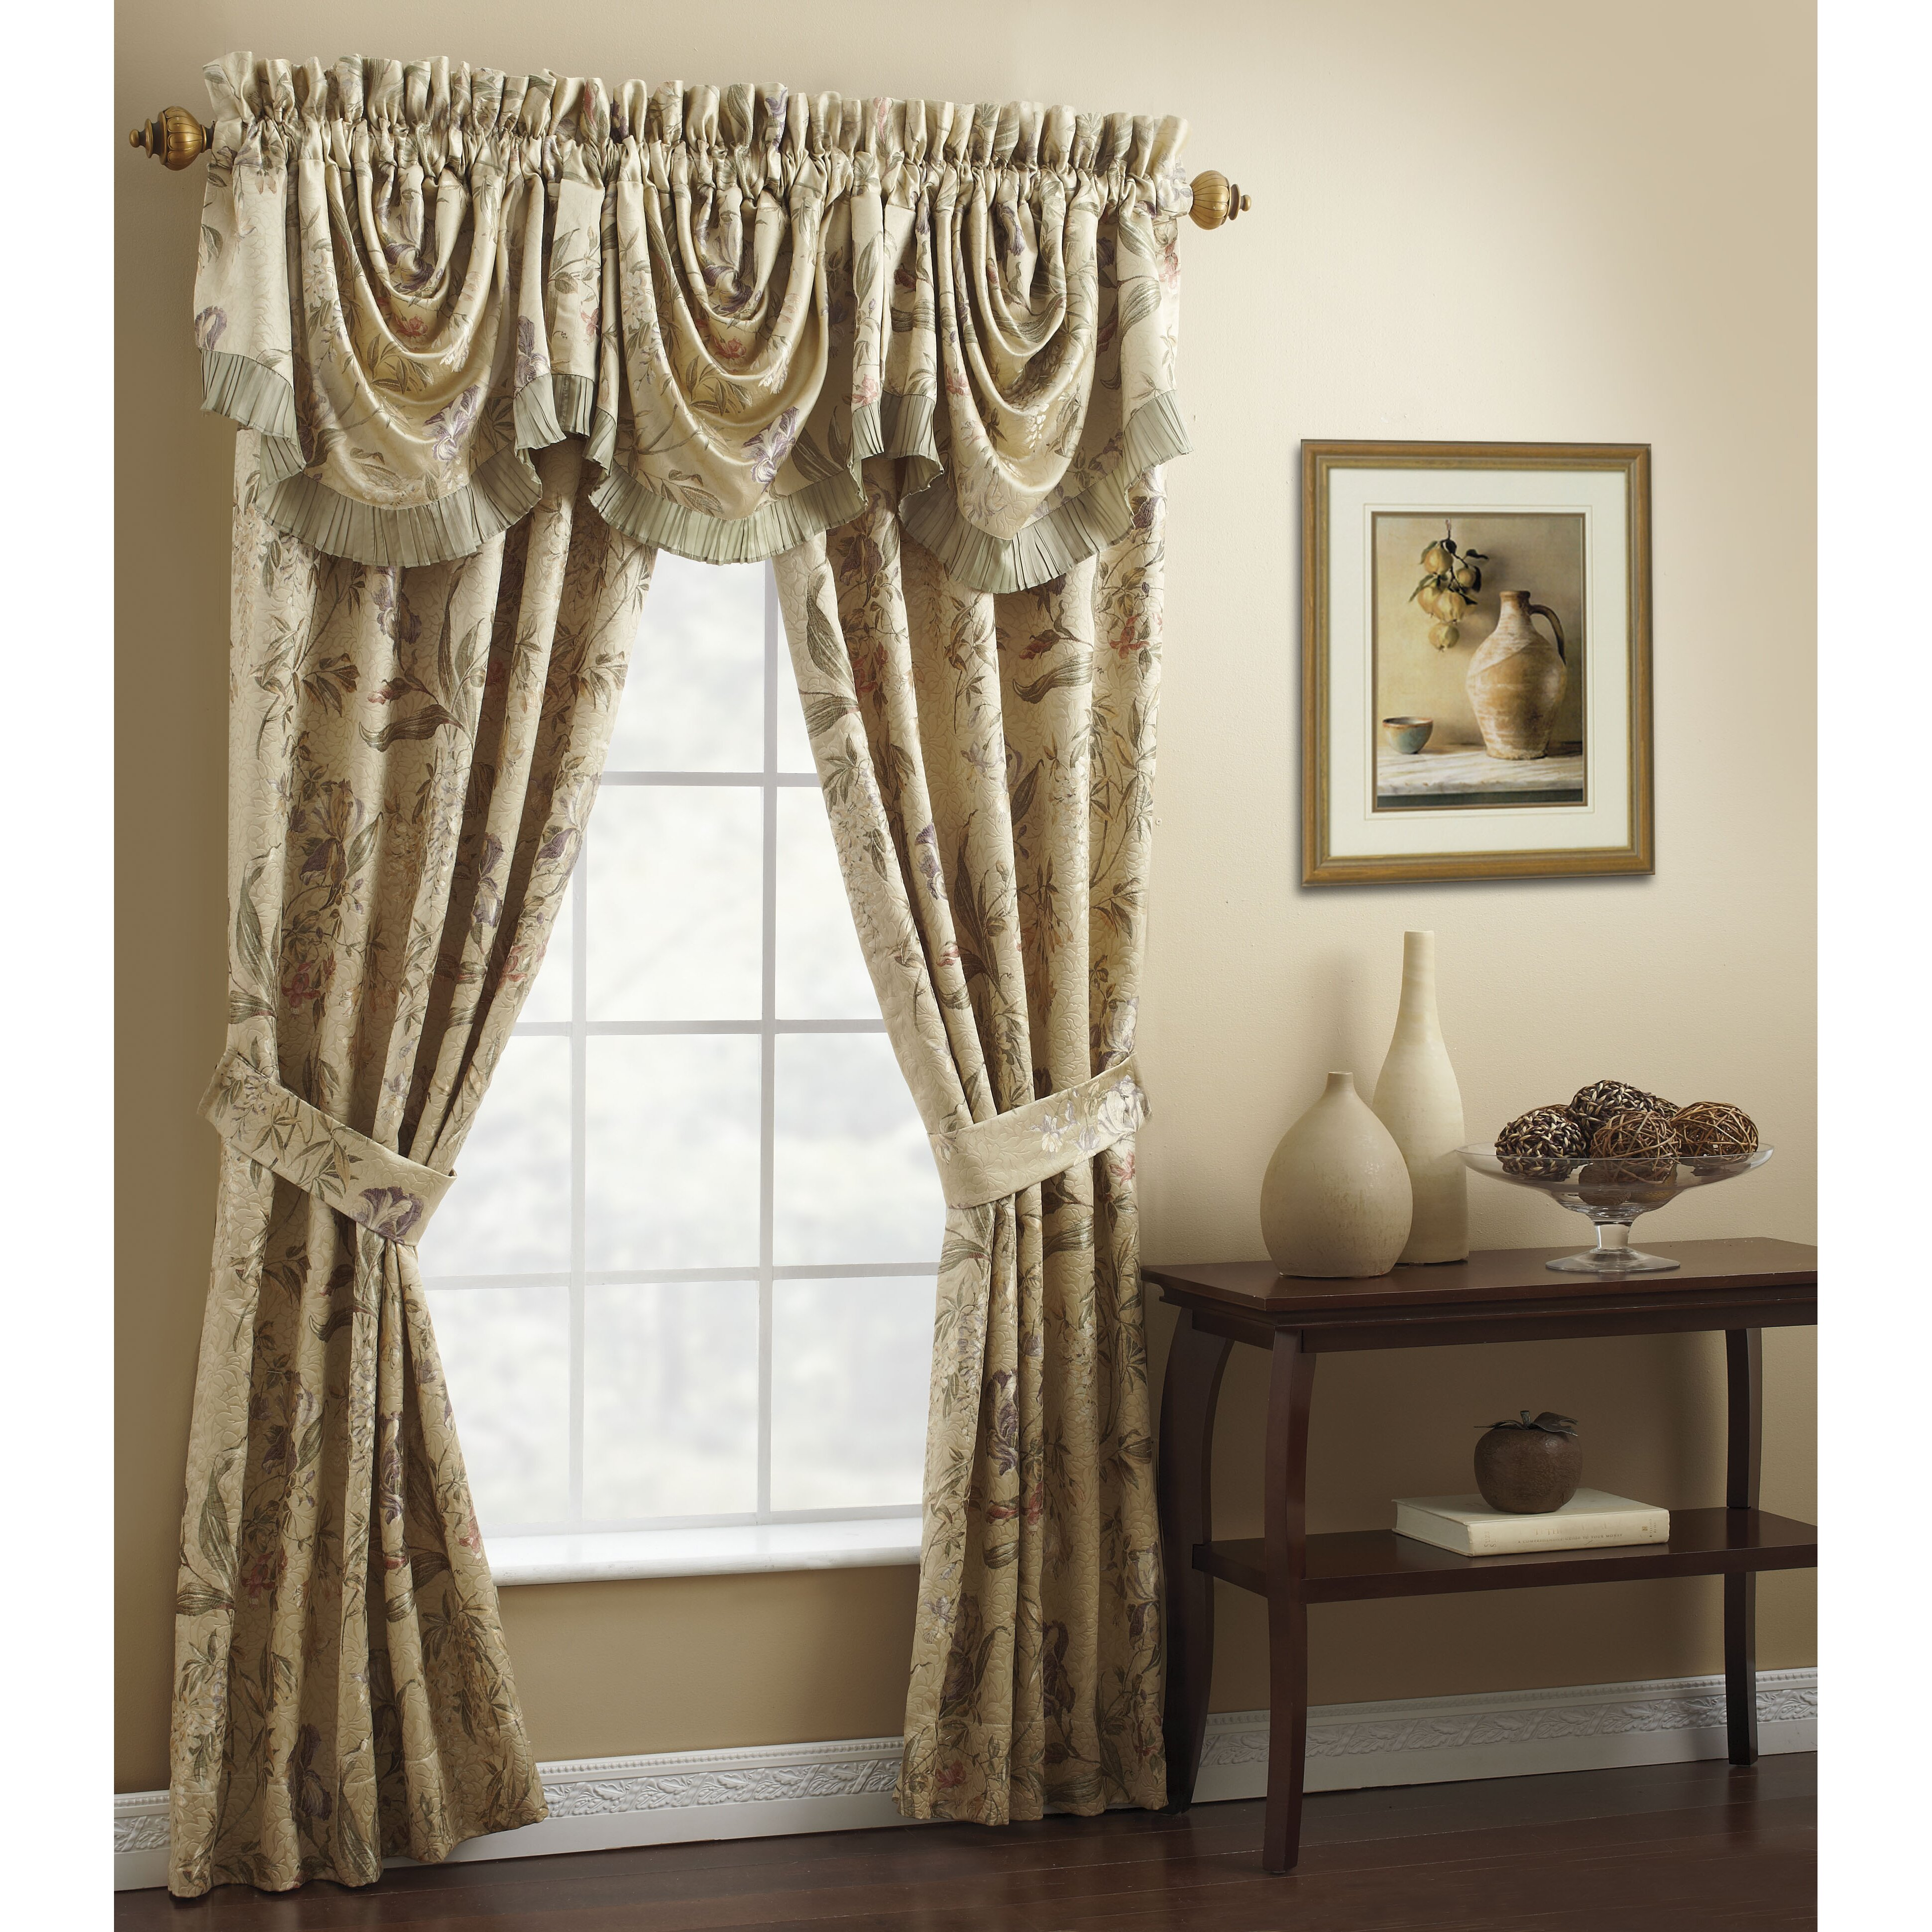 "Iris Rod Pocket Swag 44"" Curtain Valance"